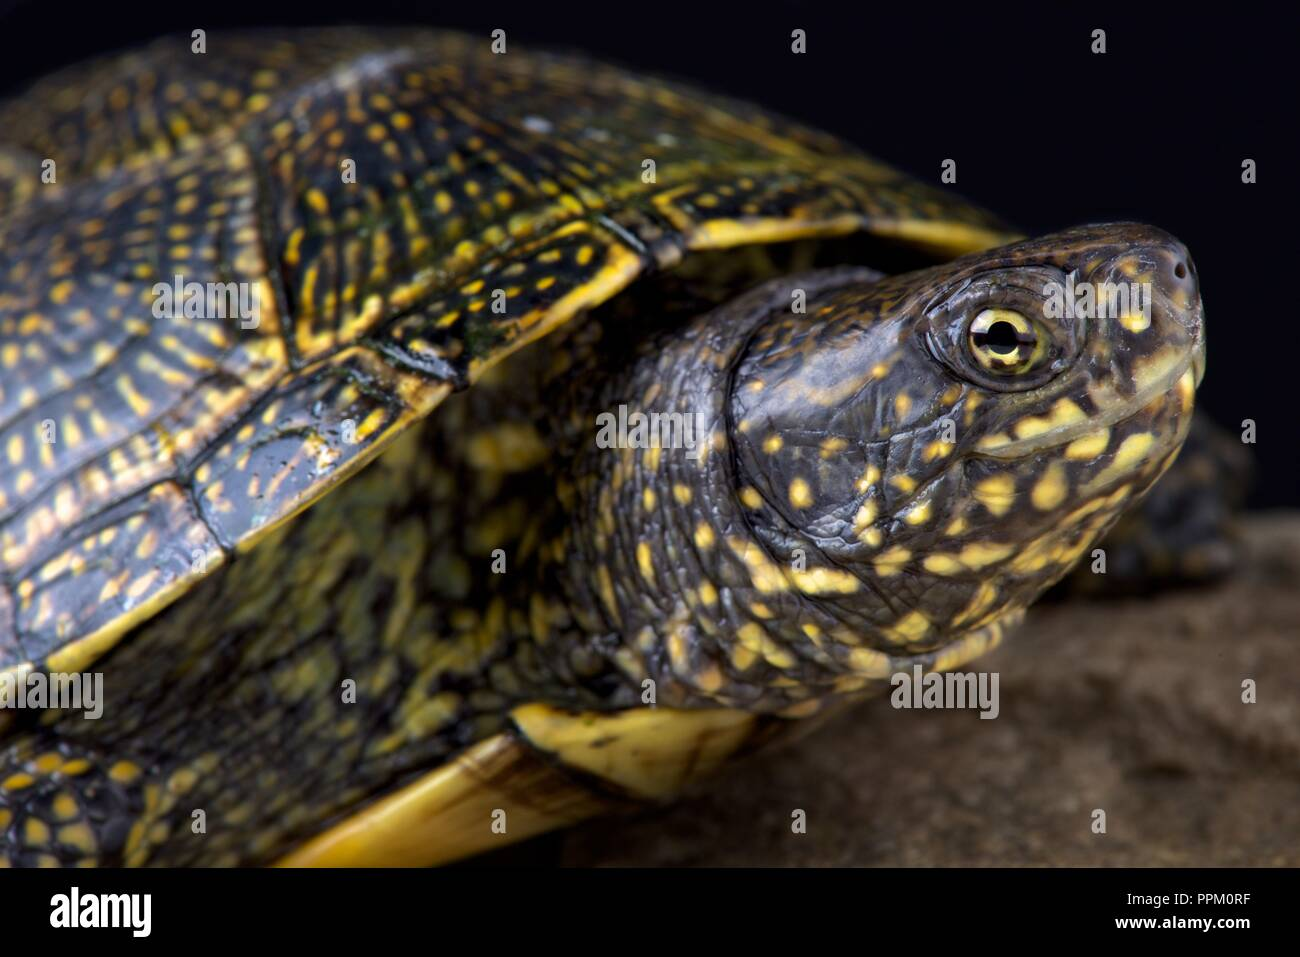 The Hellenic Pond Turtle (Emys orbicularis hellenica) is a beautiful European pond turtle species. - Stock Image